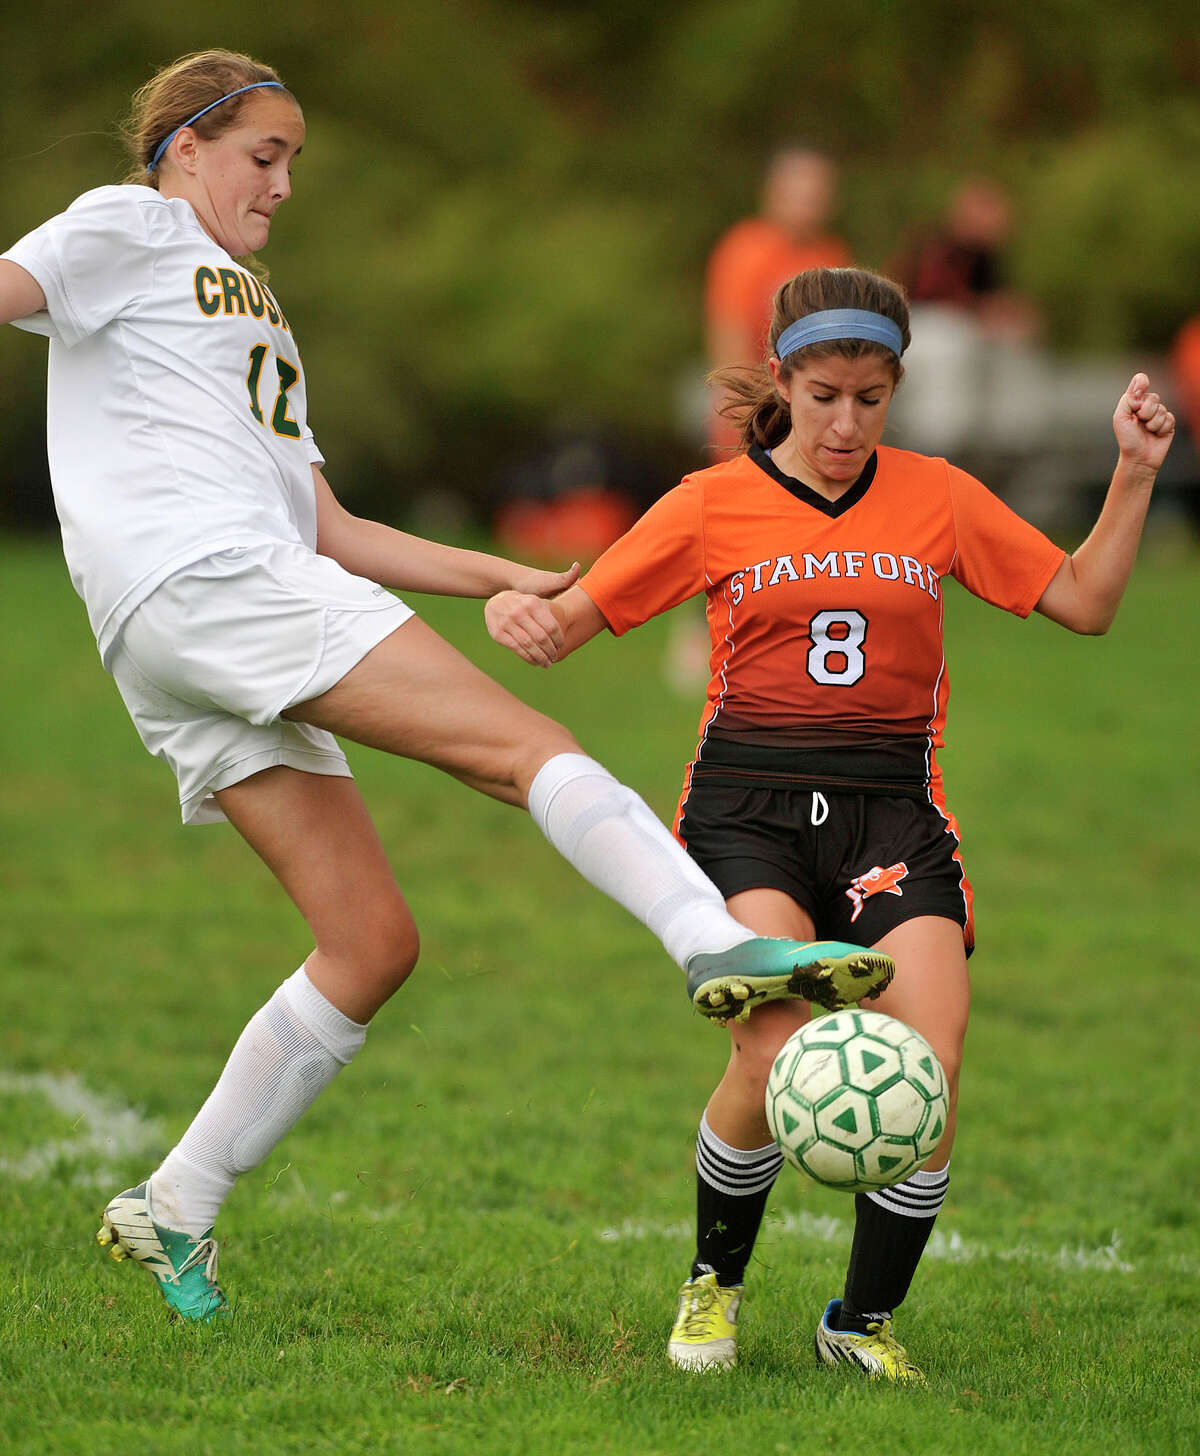 Trinity Catholic's Mary Conlon challenges Stamford's Mia Vitti for the ball during their soccer game at Trinity Catholic High School in Stamford, Conn., on Tuesday, Oct. 21, 2014. Stamford won, 5-0.